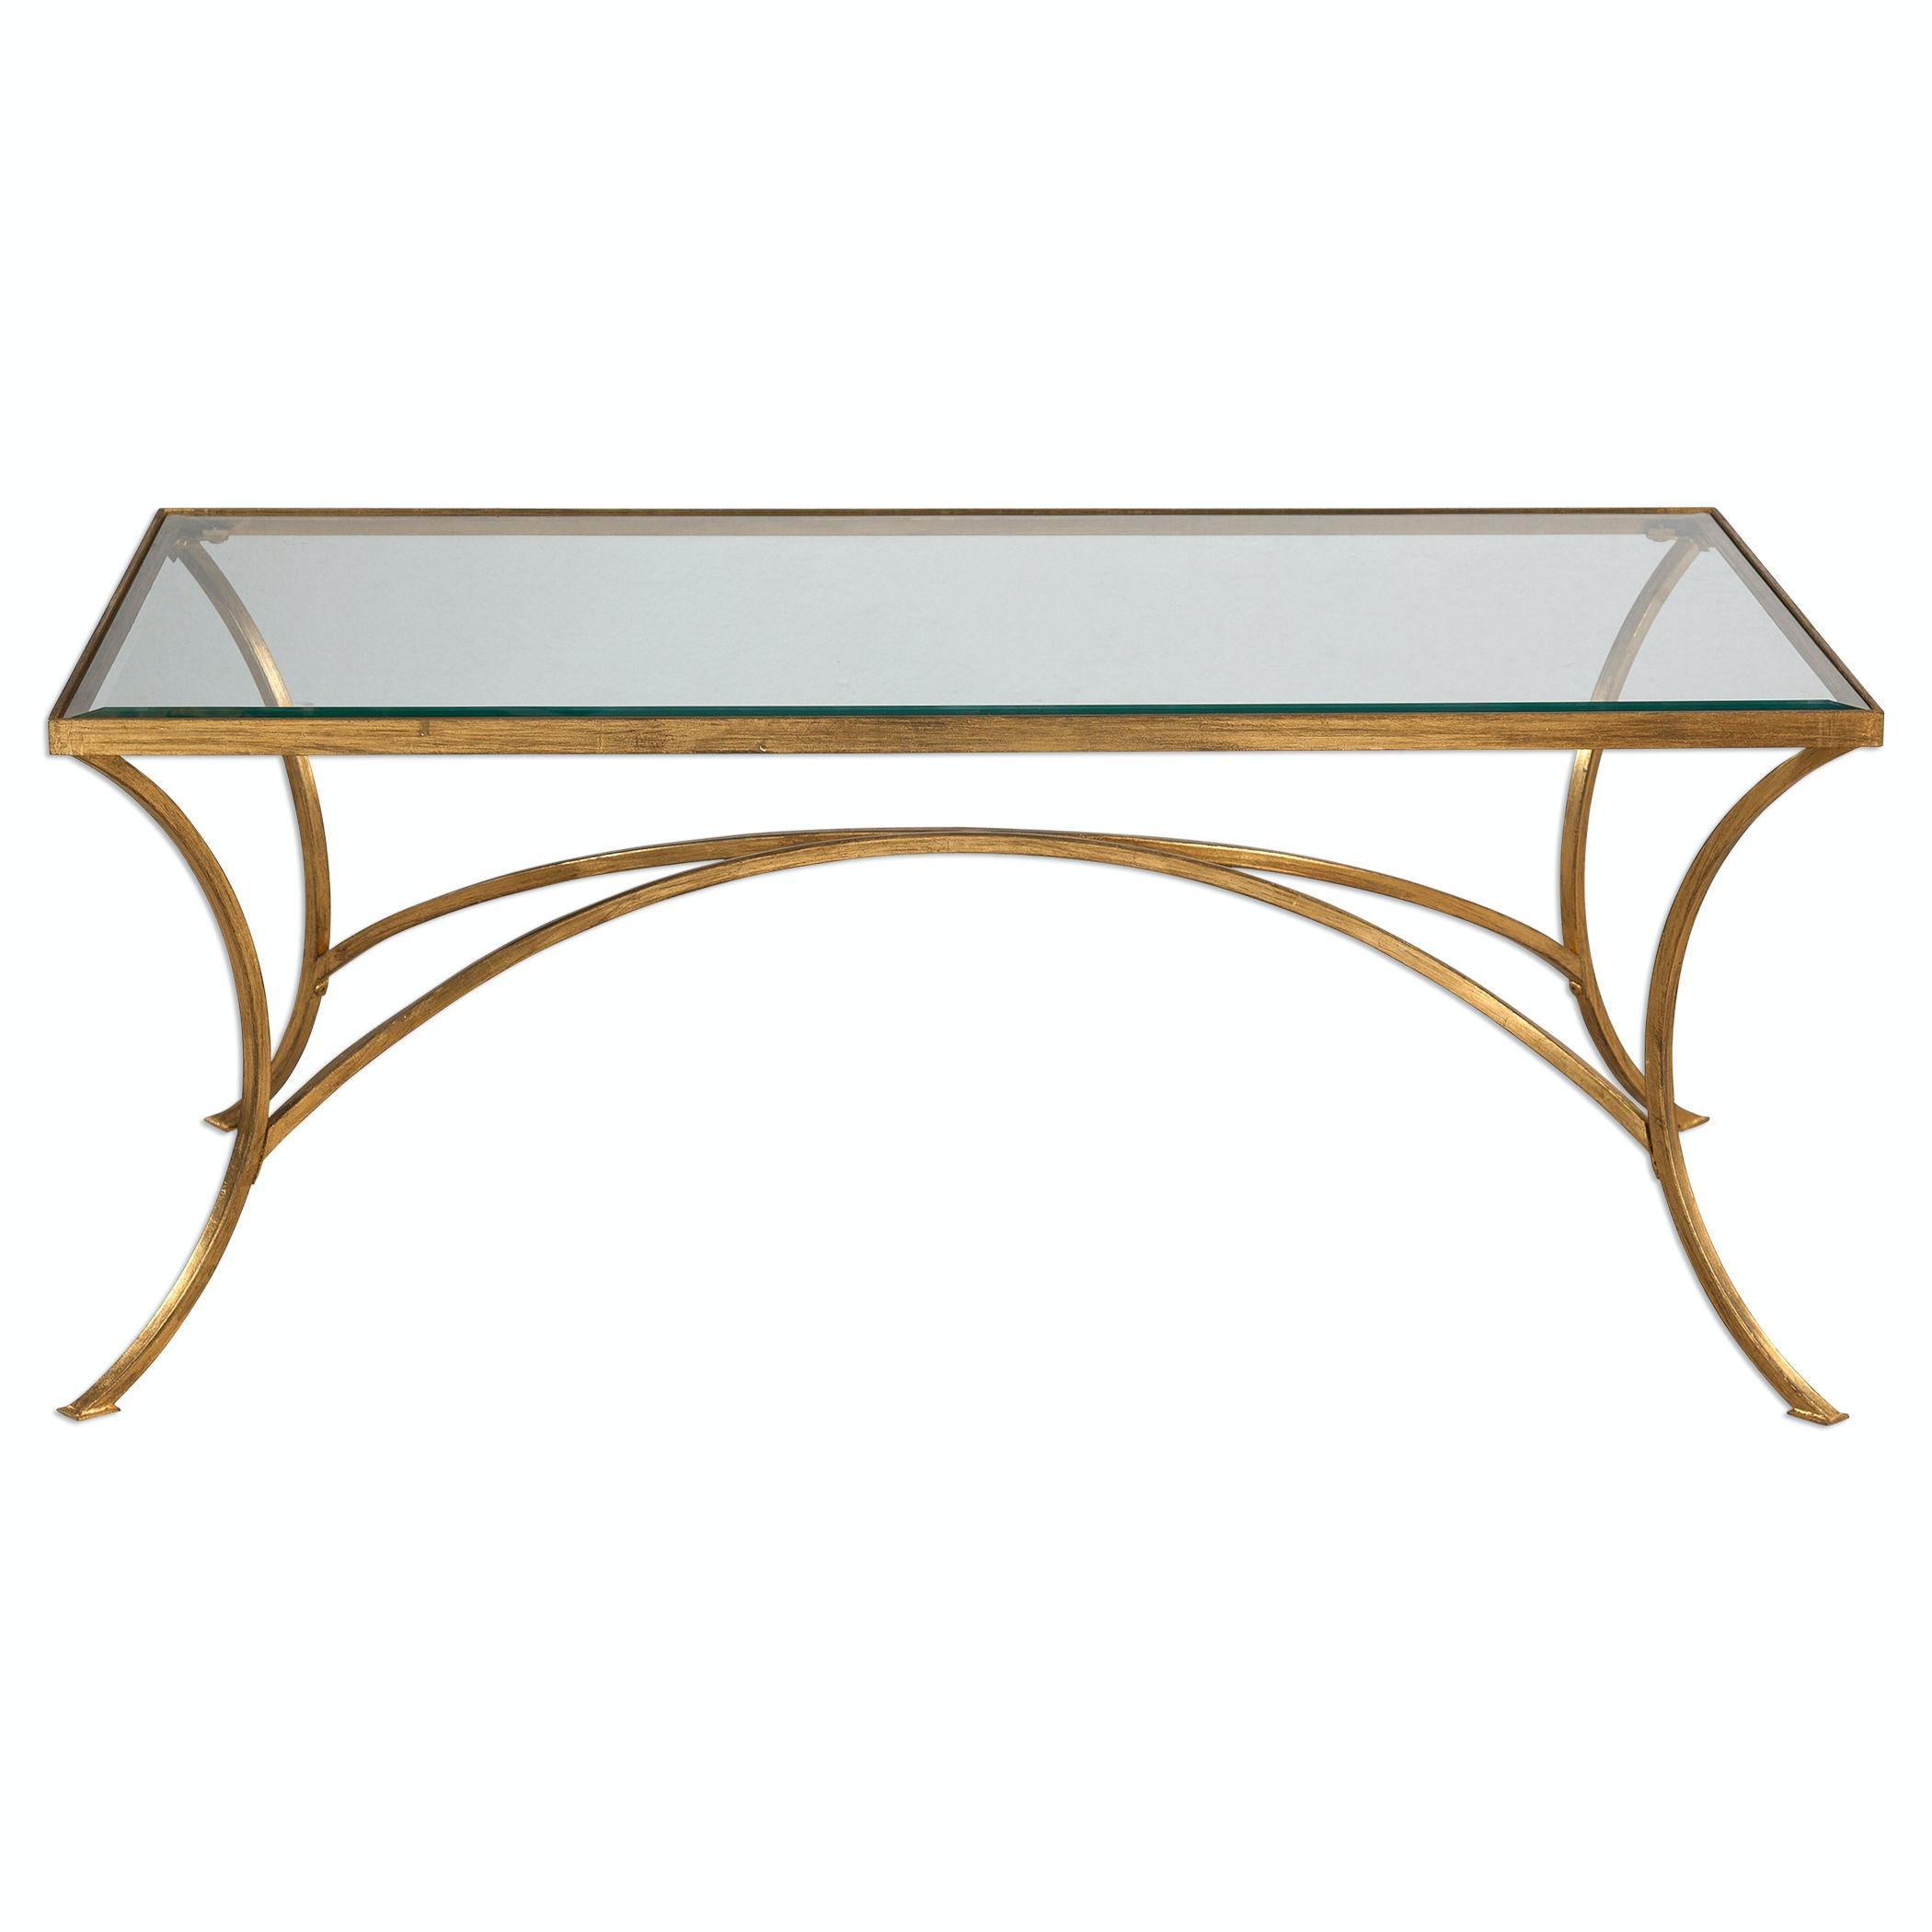 Uttermost Alayna Gold Coffee Table 24639